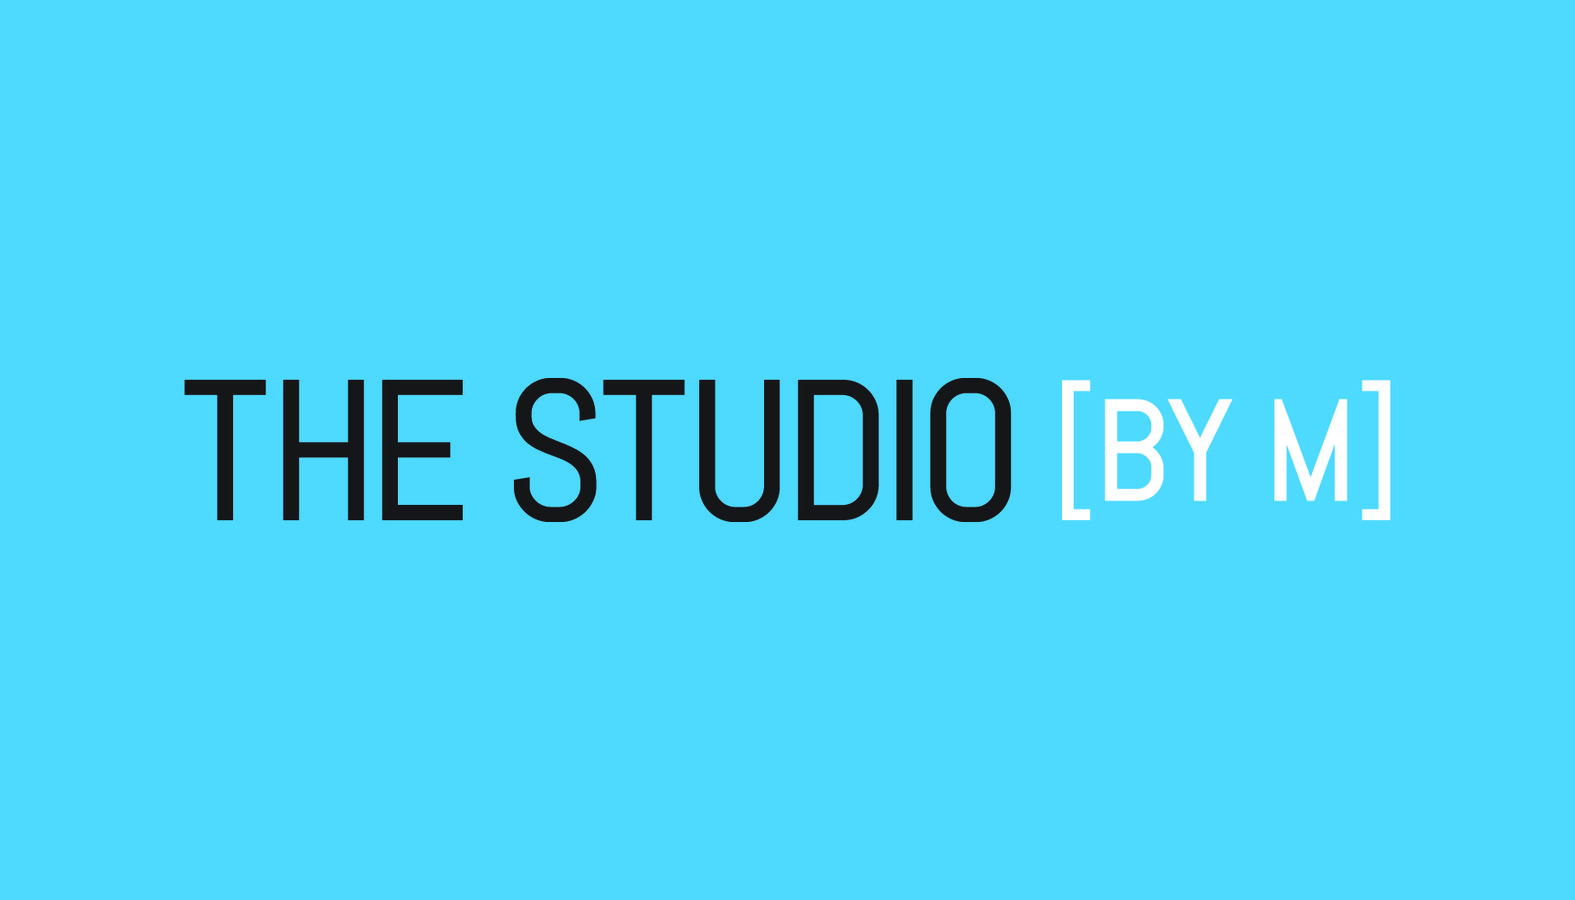 The Studio by M